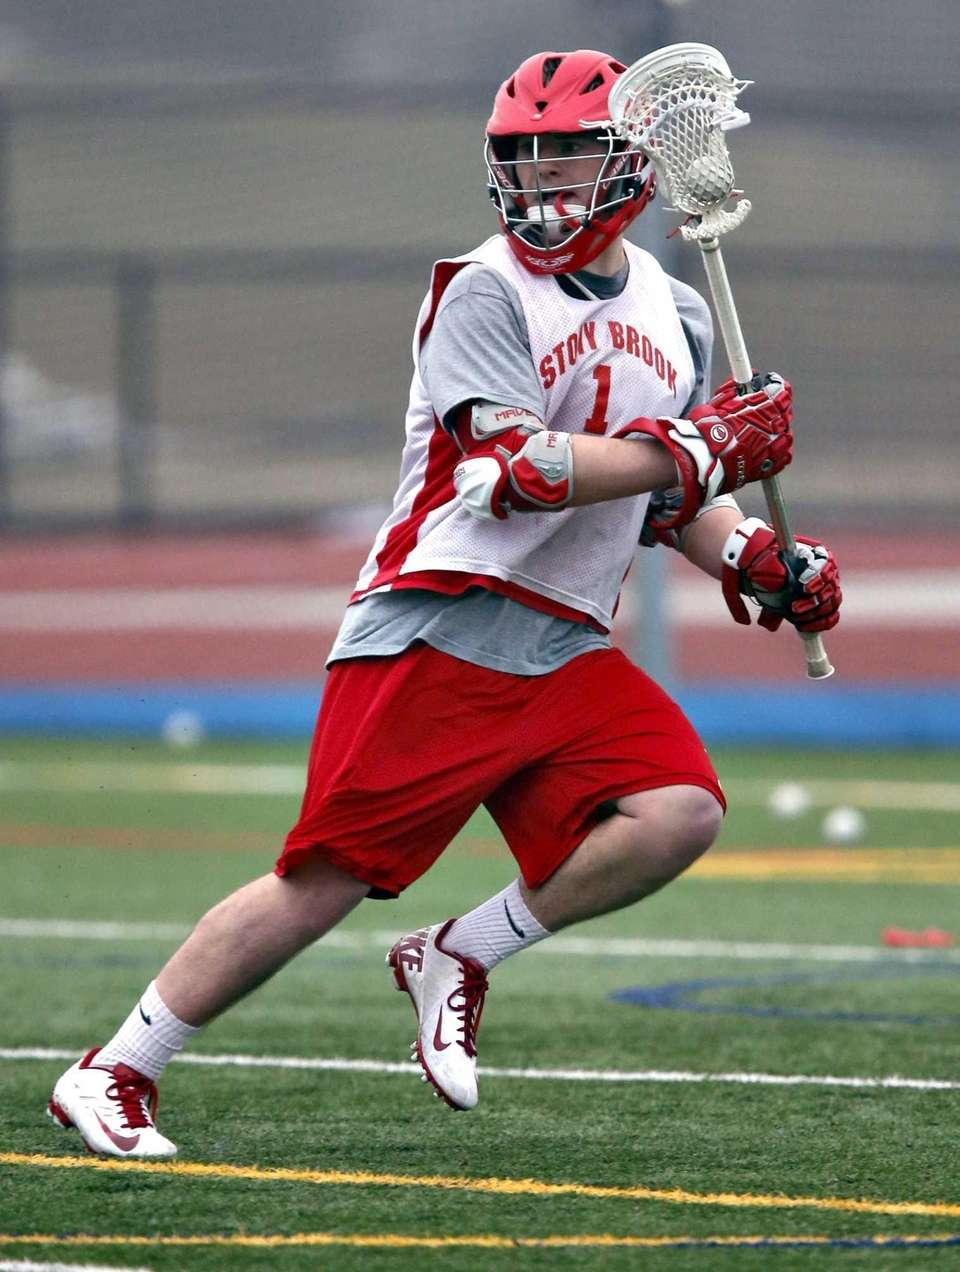 Stony Brook men's lacrosse senior attack Mike Rooney